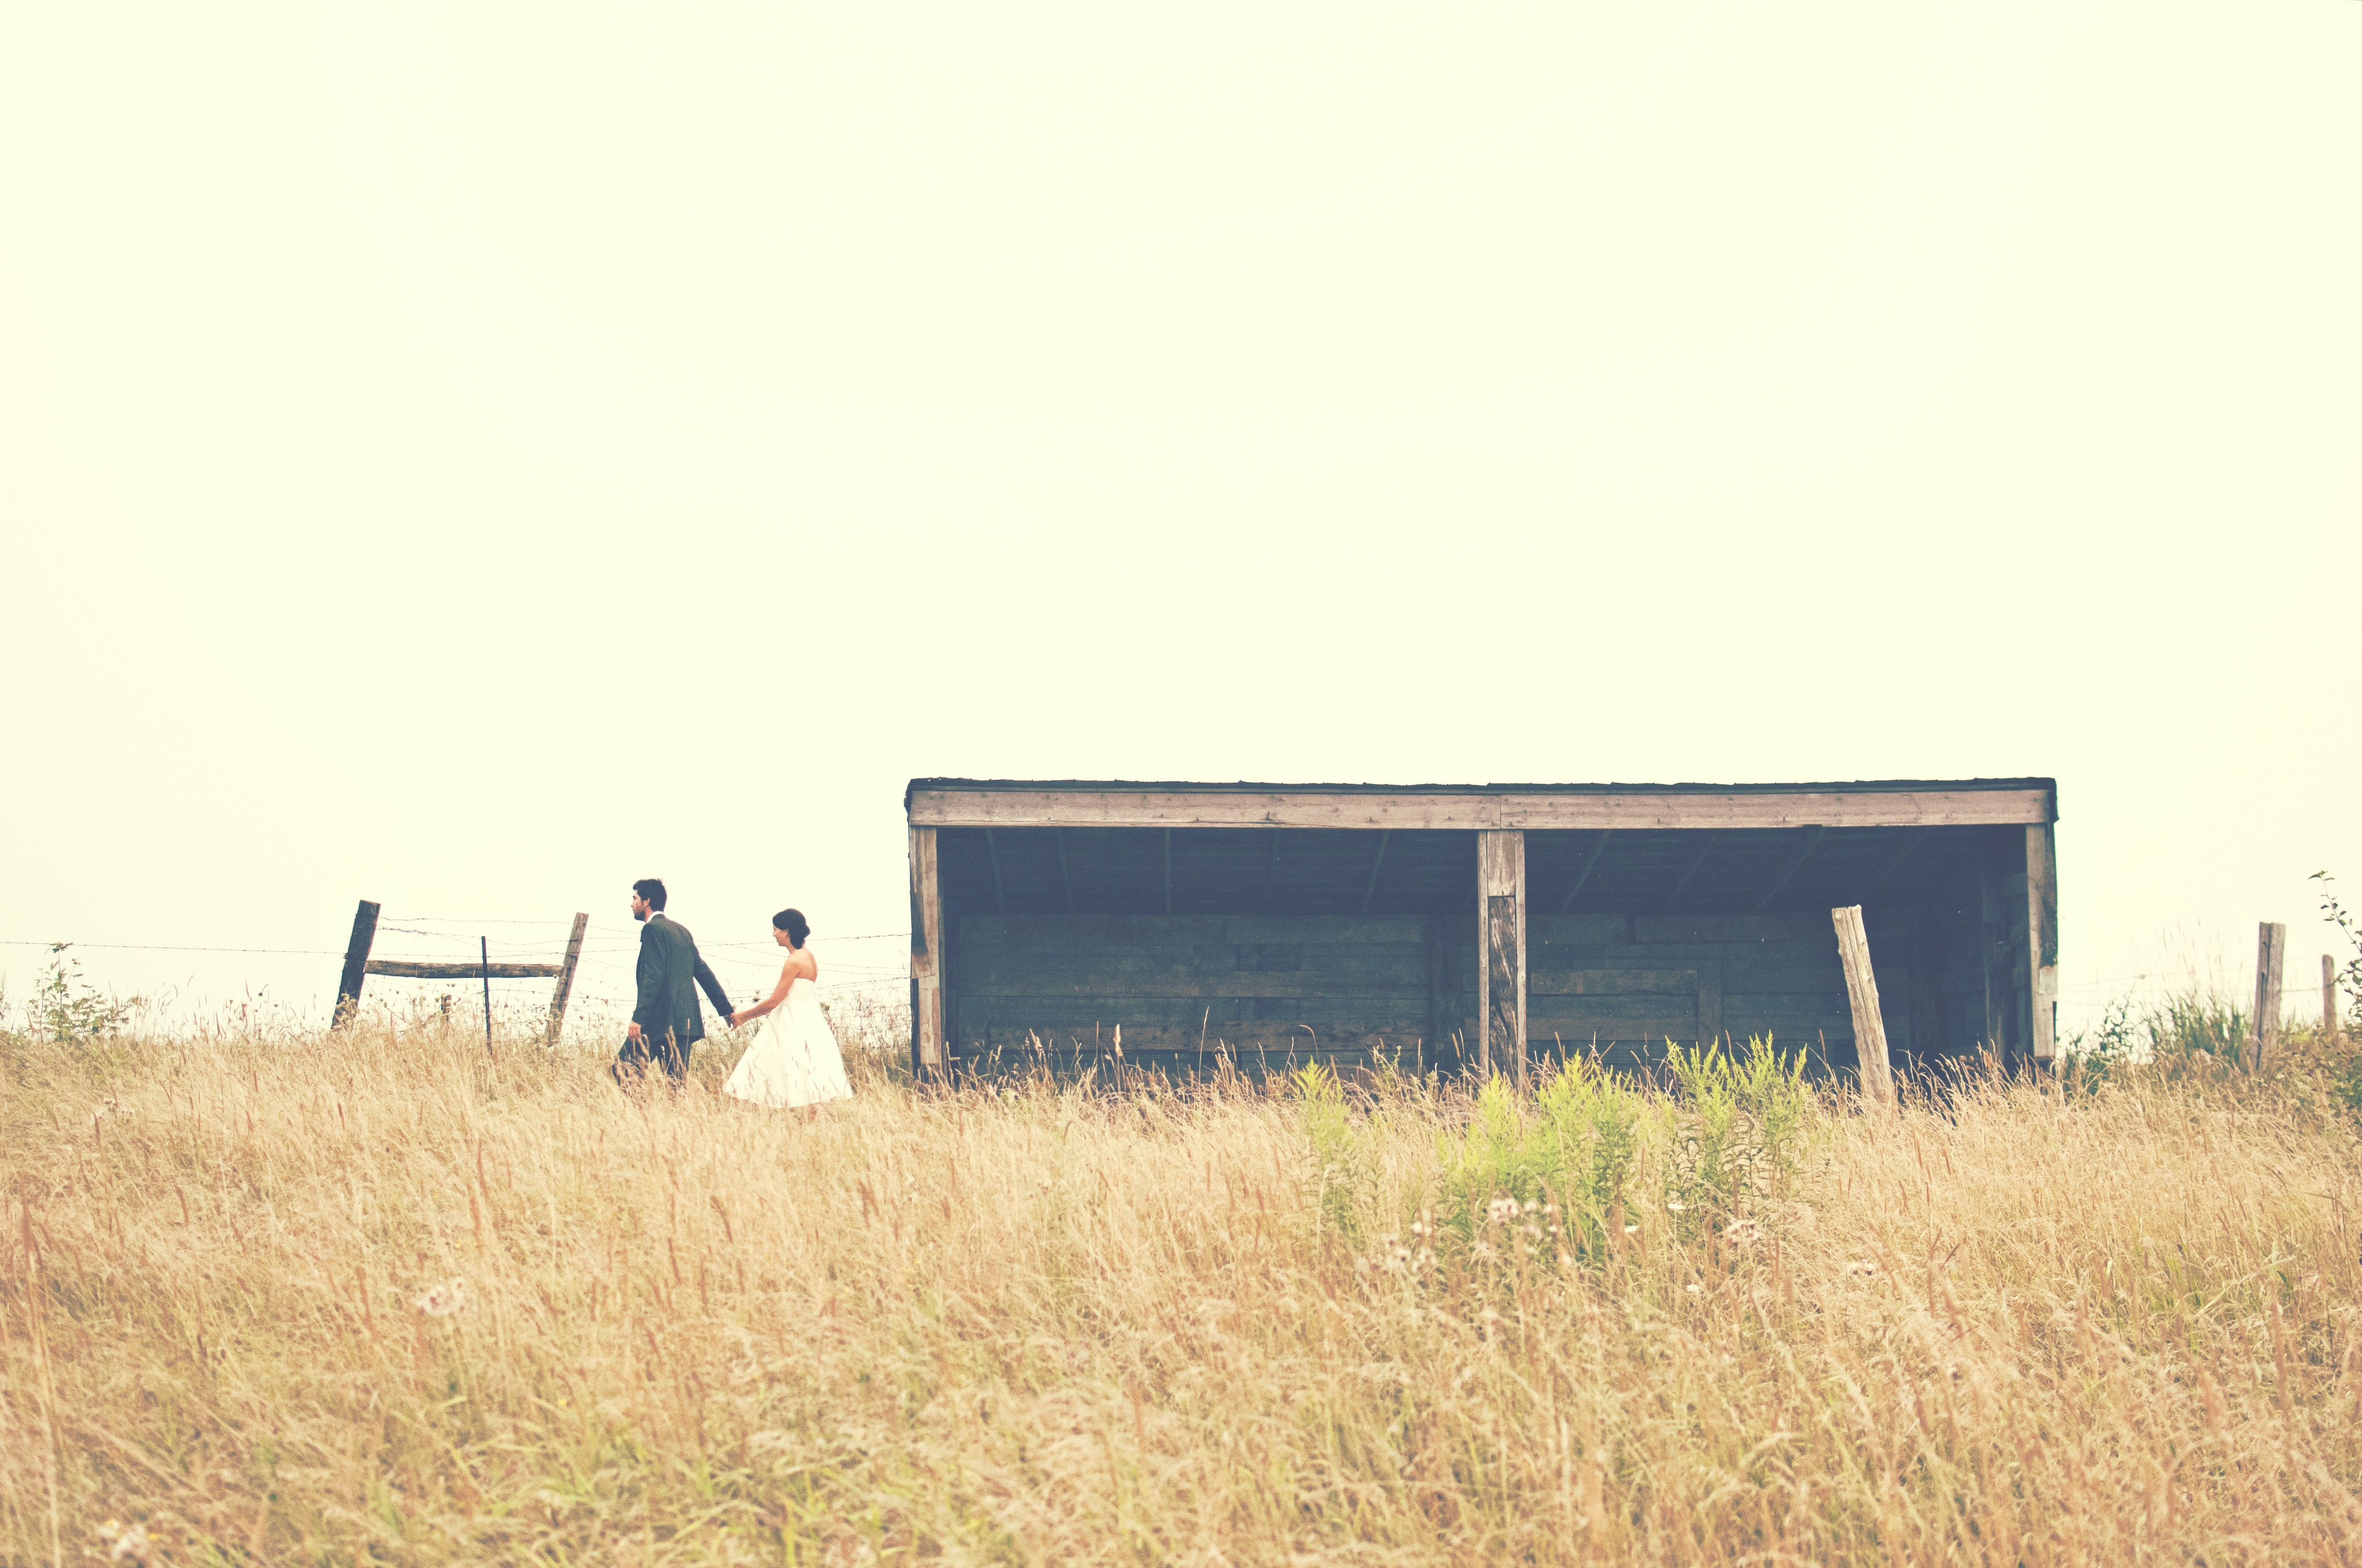 Wedding day photo in a field beside an old wooden farm building